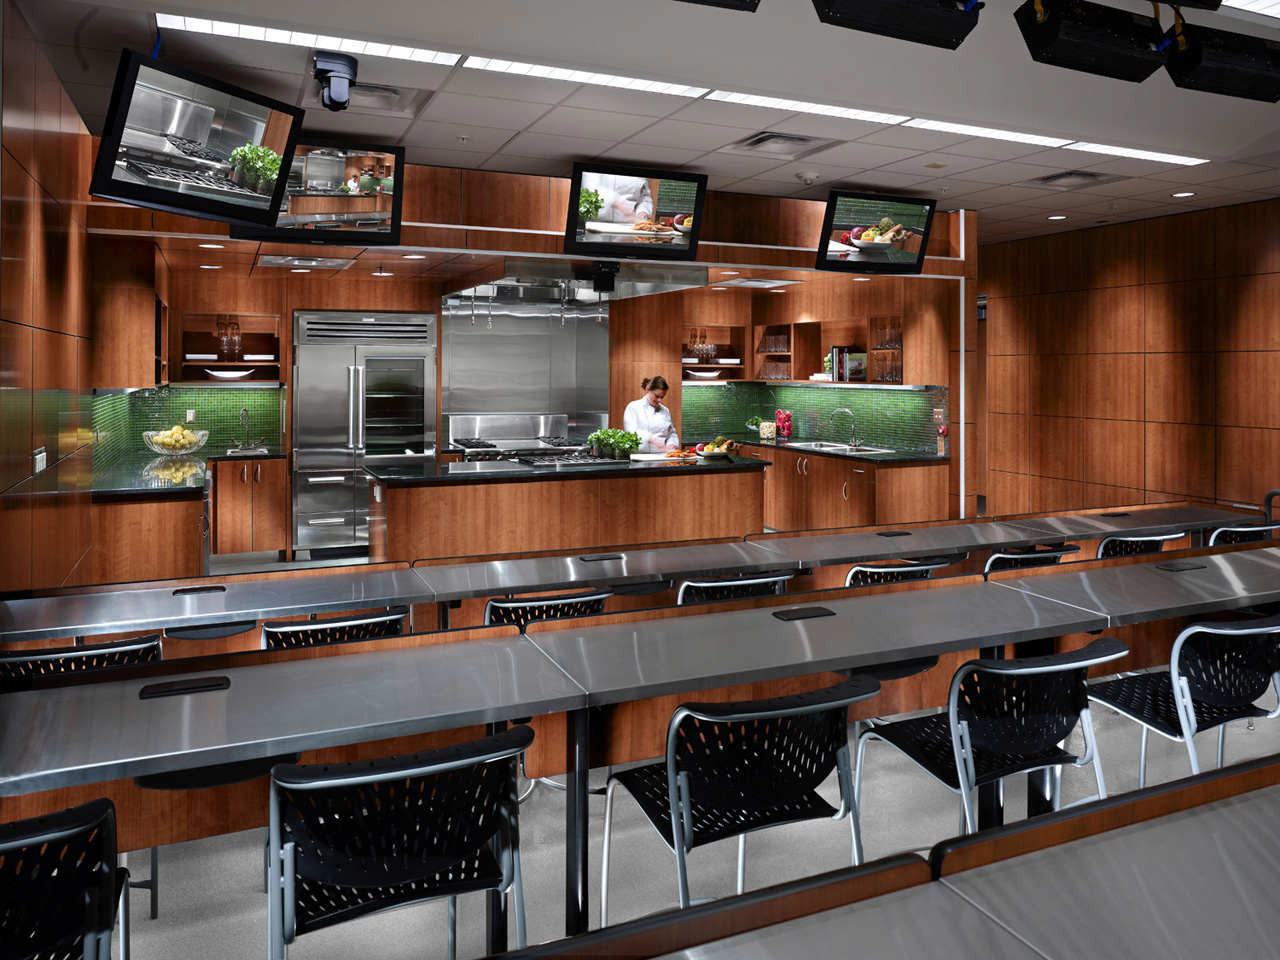 Gallery of institute for the culinary arts hdr for School kitchen designs